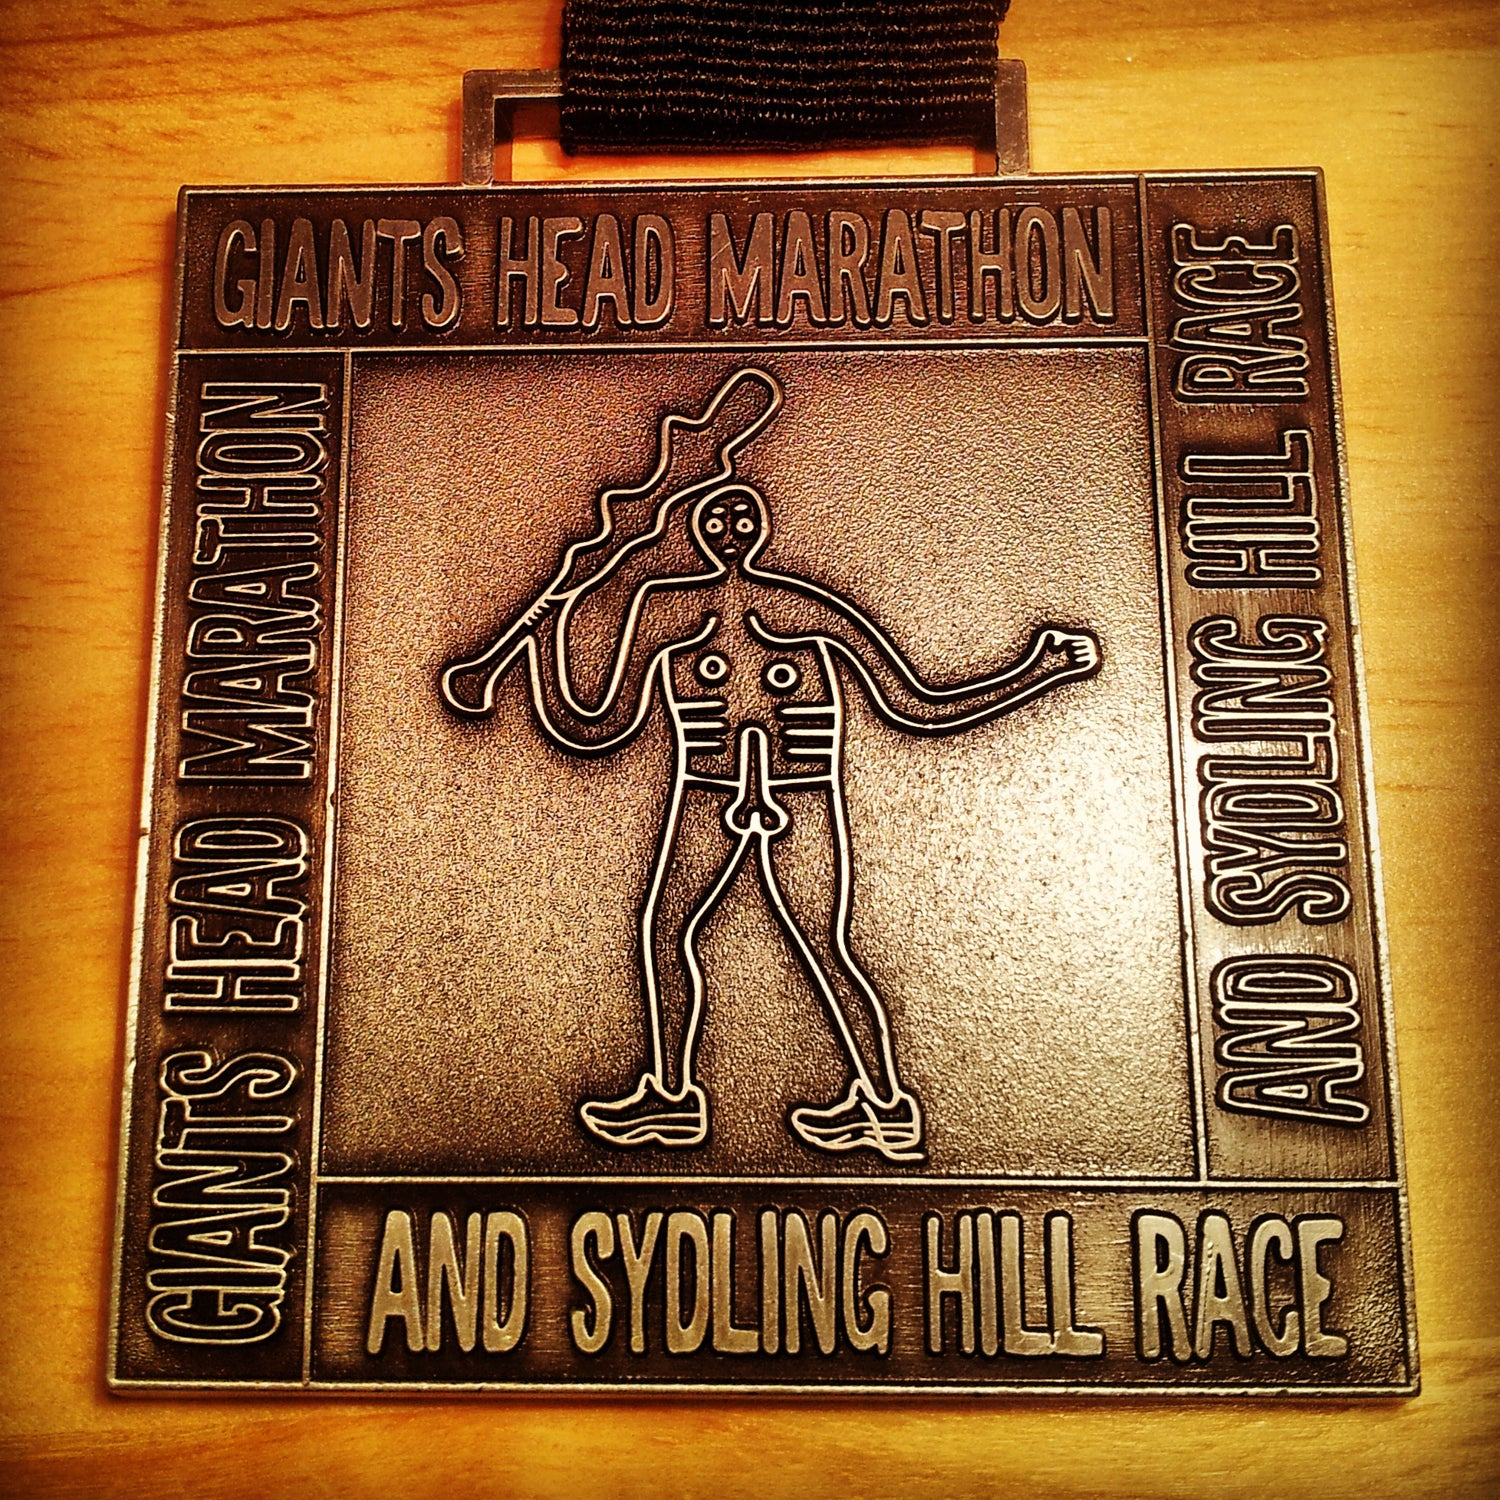 """Williams: Speaking of male genitalia, the next medal was fabulous enough to make me sign up for the (slightly long) marathon despite it's hellish elevation profile. The Giant's Head Marathon, in Dorset, takes place in the beautiful English countryside, including the historical Cerne Abbas Giant, a giant chalk drawing on a hillside. The Cerne Abbas Giant features prominently on the medal, including his prominent member. It's also a weighty piece of hardware and a challenging day out. Bonus: At (roughly) 20 miles, there is a """"Love Station,"""" which features tray bakes, cake, sandwiches, cider, and flavored vodka.Fun fact: The weekend was so filled with innuendo that I genuinely asked for the """"spicy penis sauce"""" instead of the spicy peanut sauce the following day in a restaurant."""